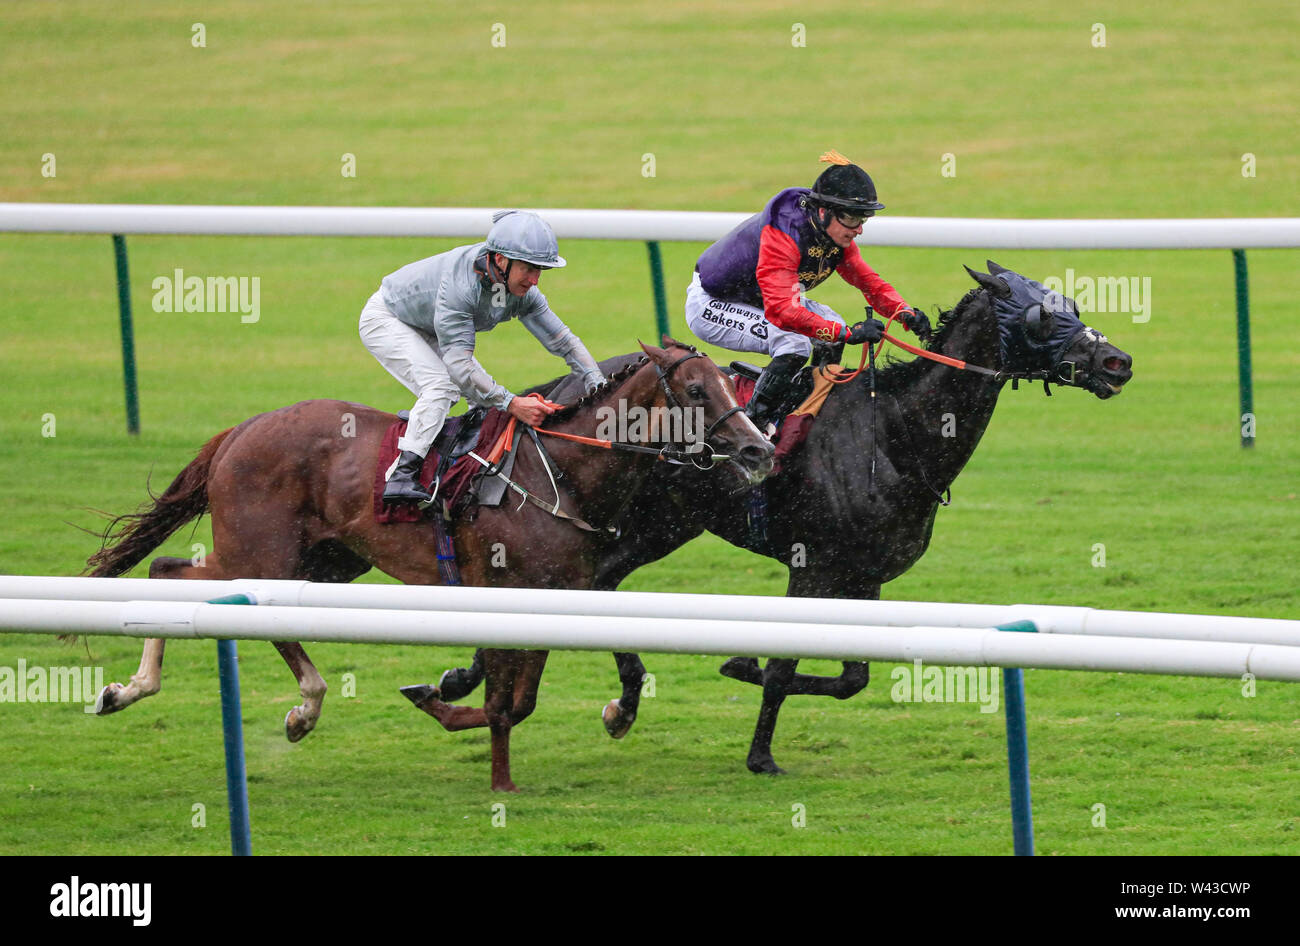 Haydock Horse Racing Course Stock Photos & Haydock Horse Racing